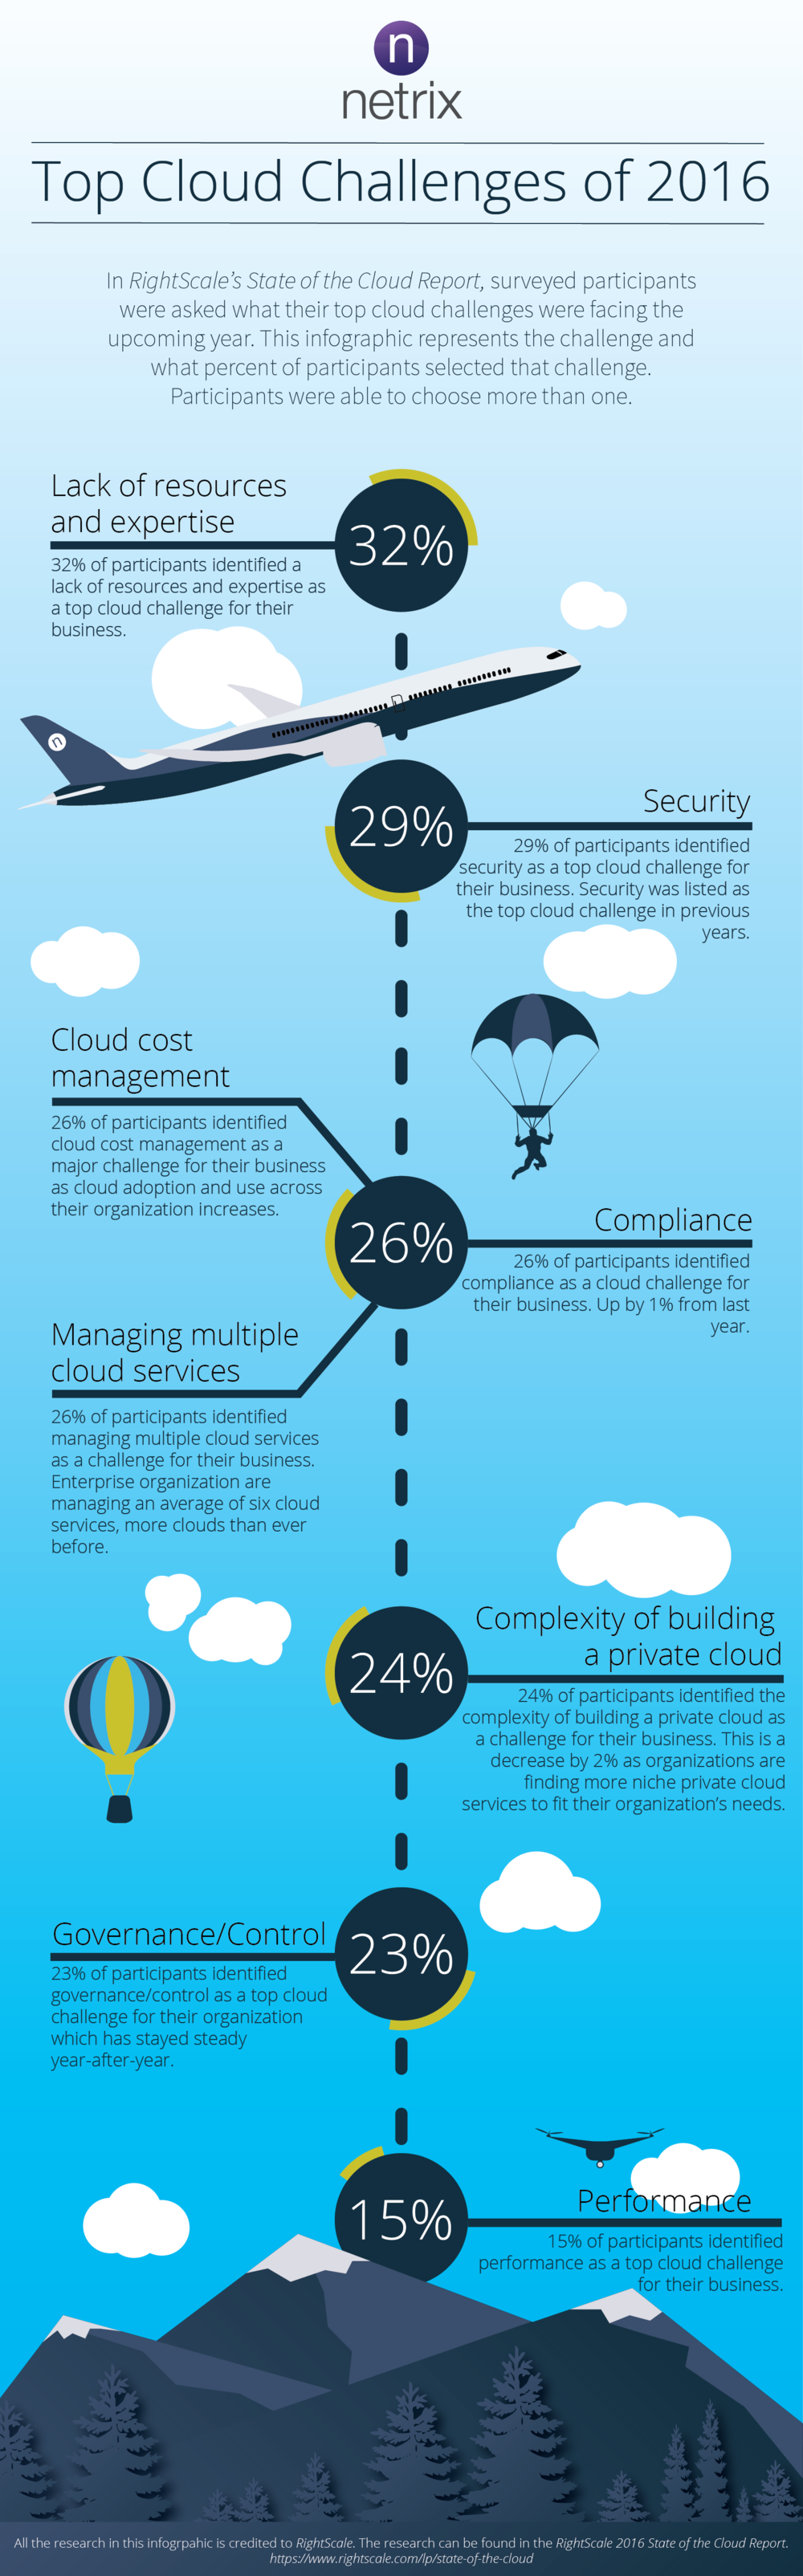 Top Cloud Challenges of 2016